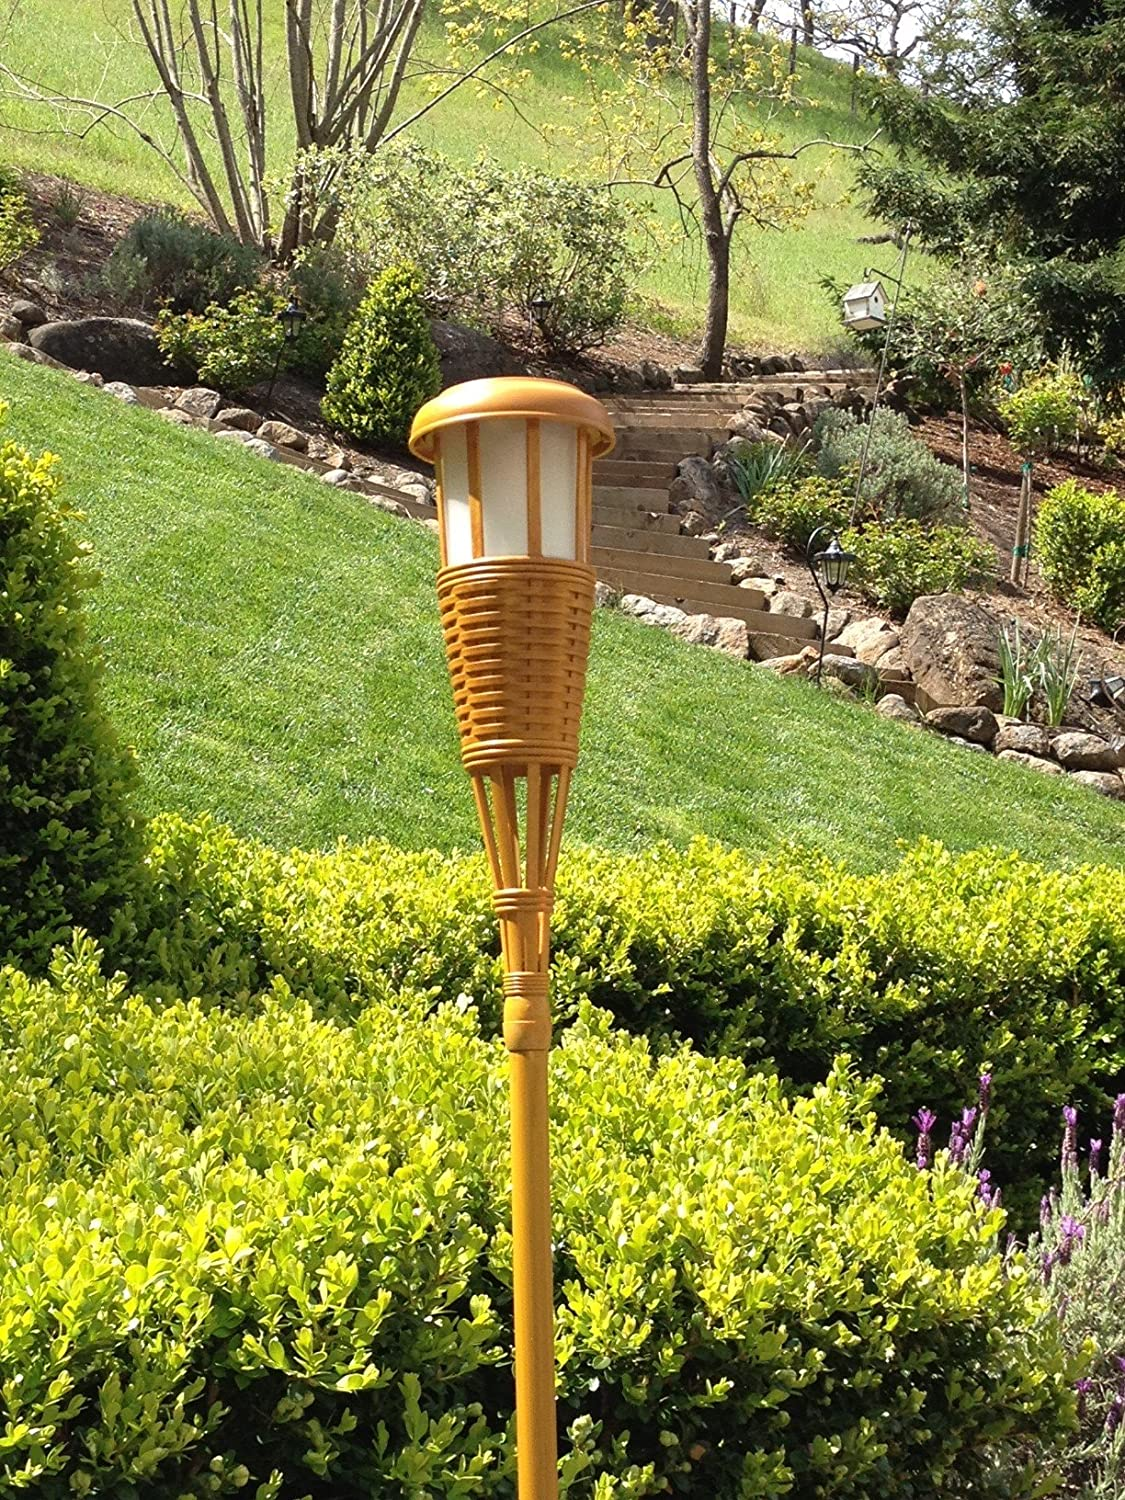 lighting tiki torches. Newhouse Lighting Solar Flickering LED Island Torches, Bamboo Finish, 4-Pack - Landscape Torch Lights Amazon.com Tiki Torches